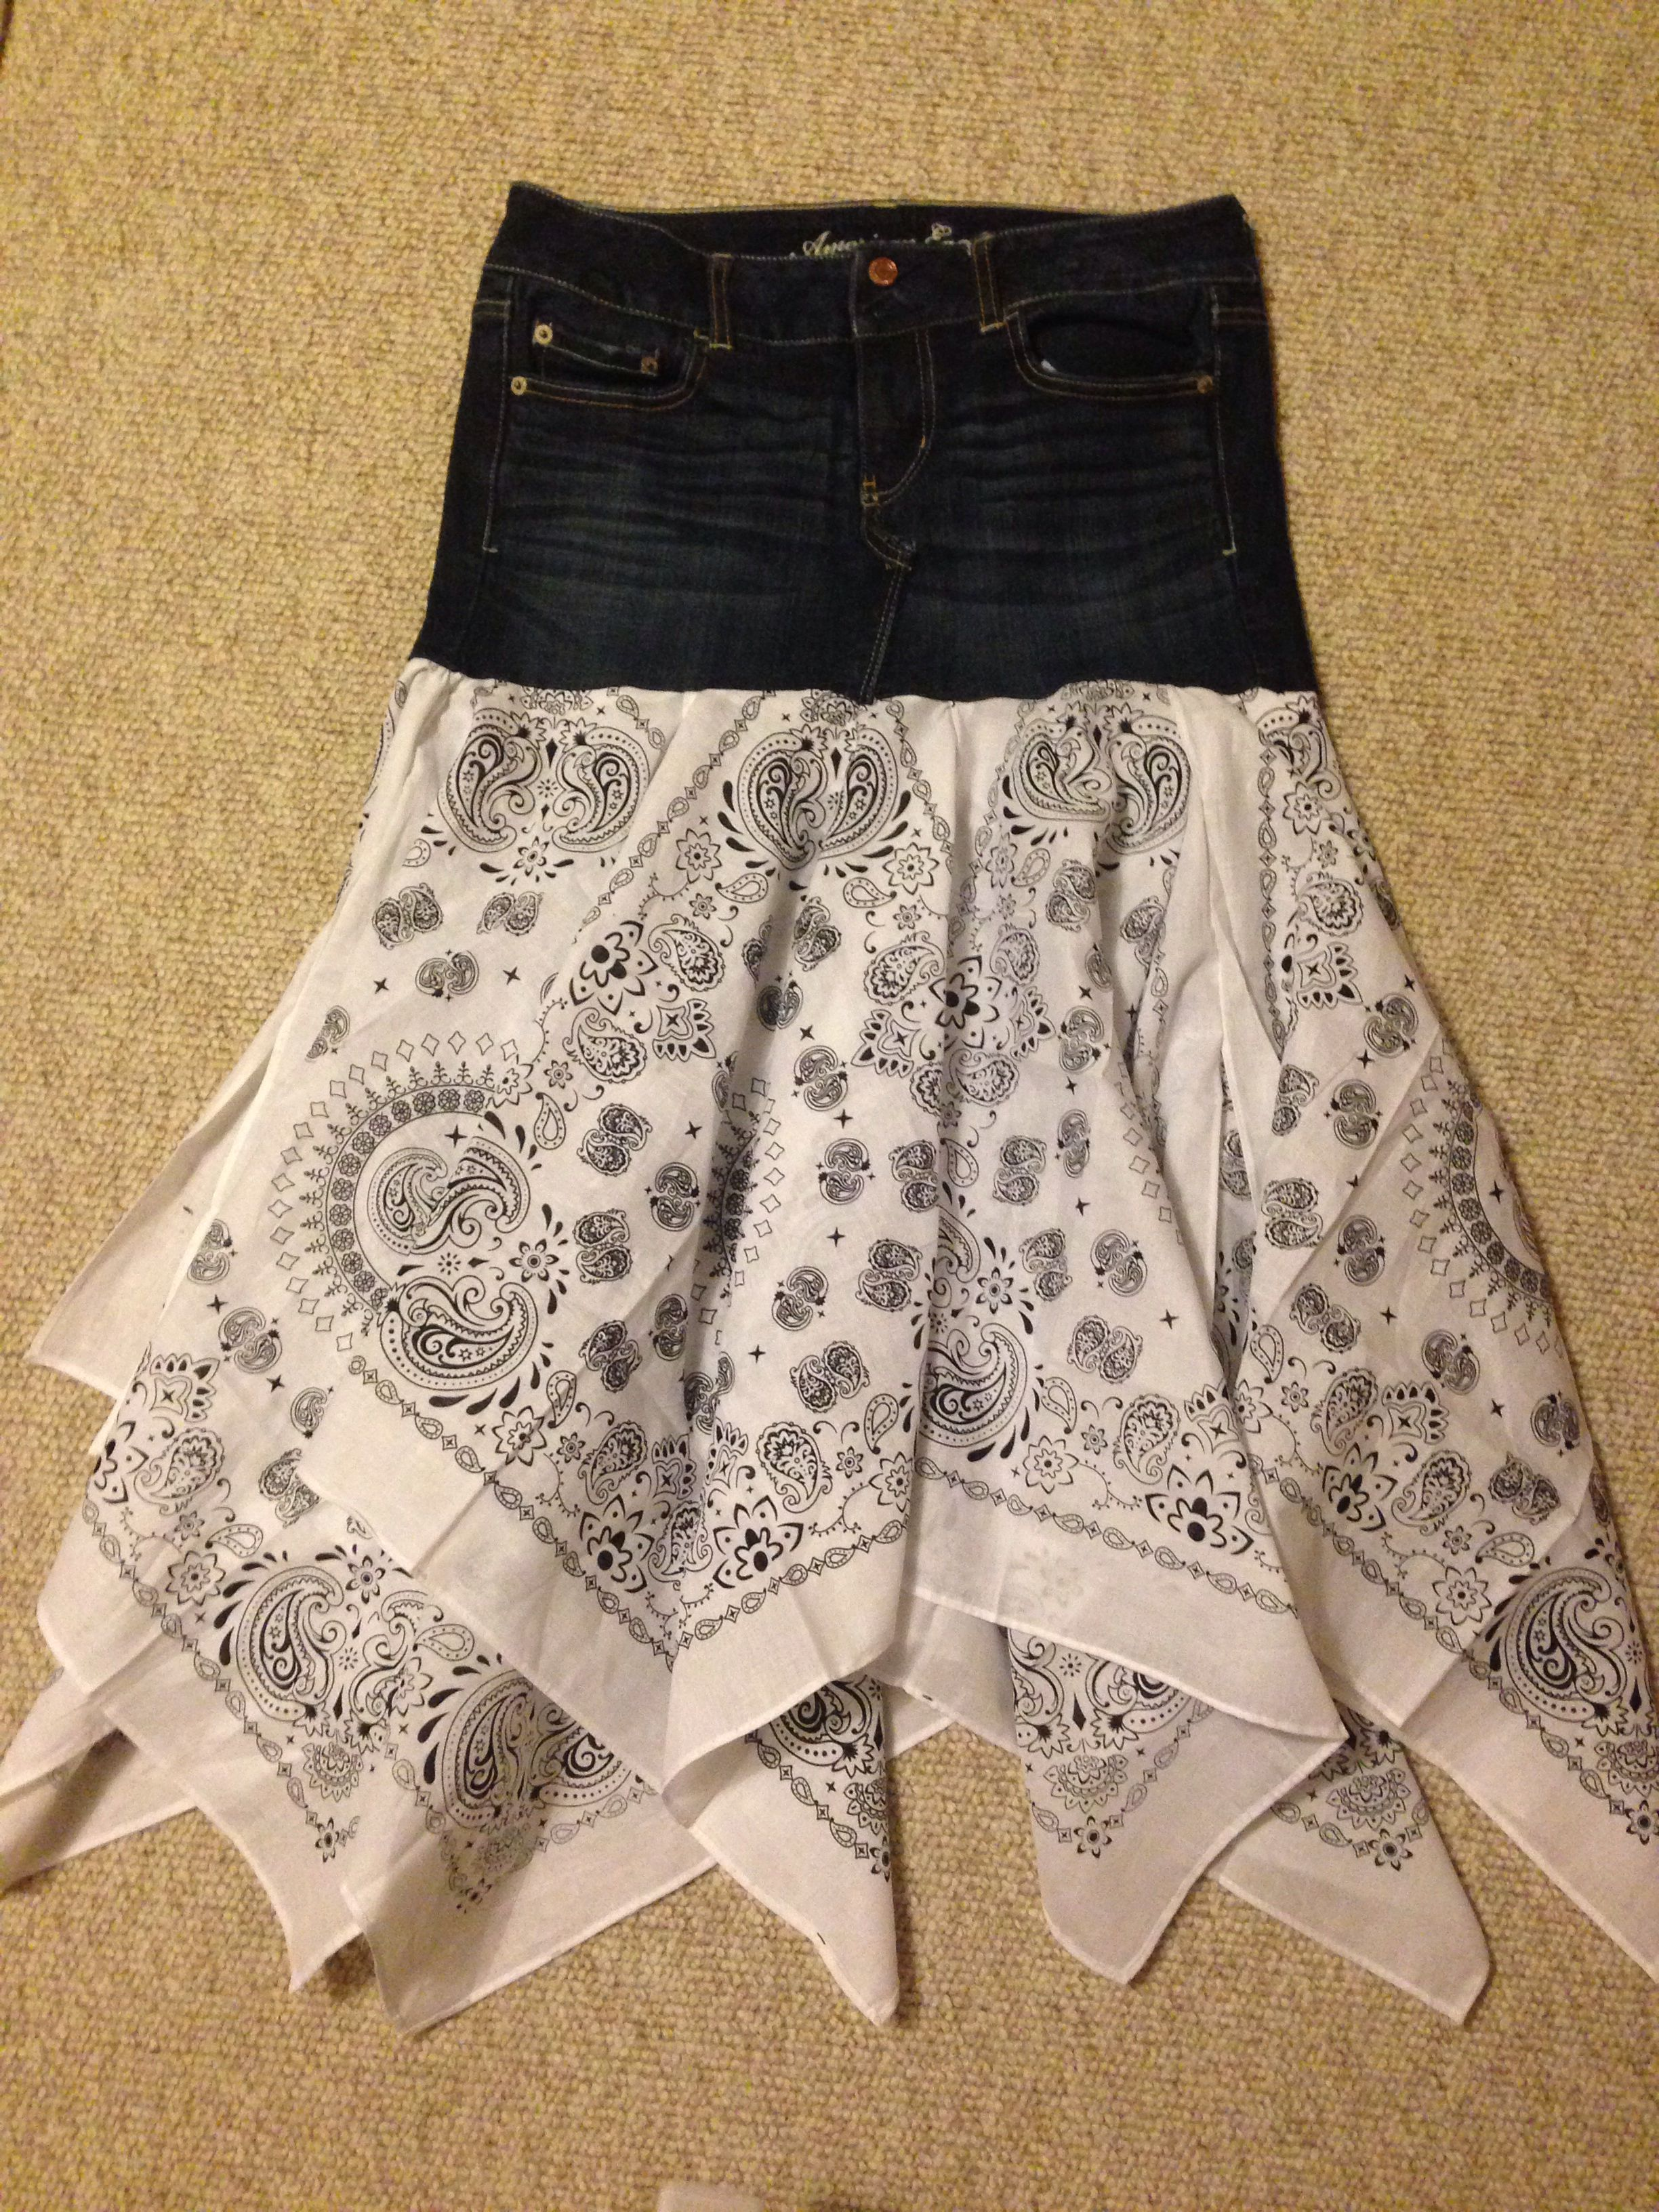 Diy bandana skirt from jeans | Stuff I made | Pinterest | Nähen ...